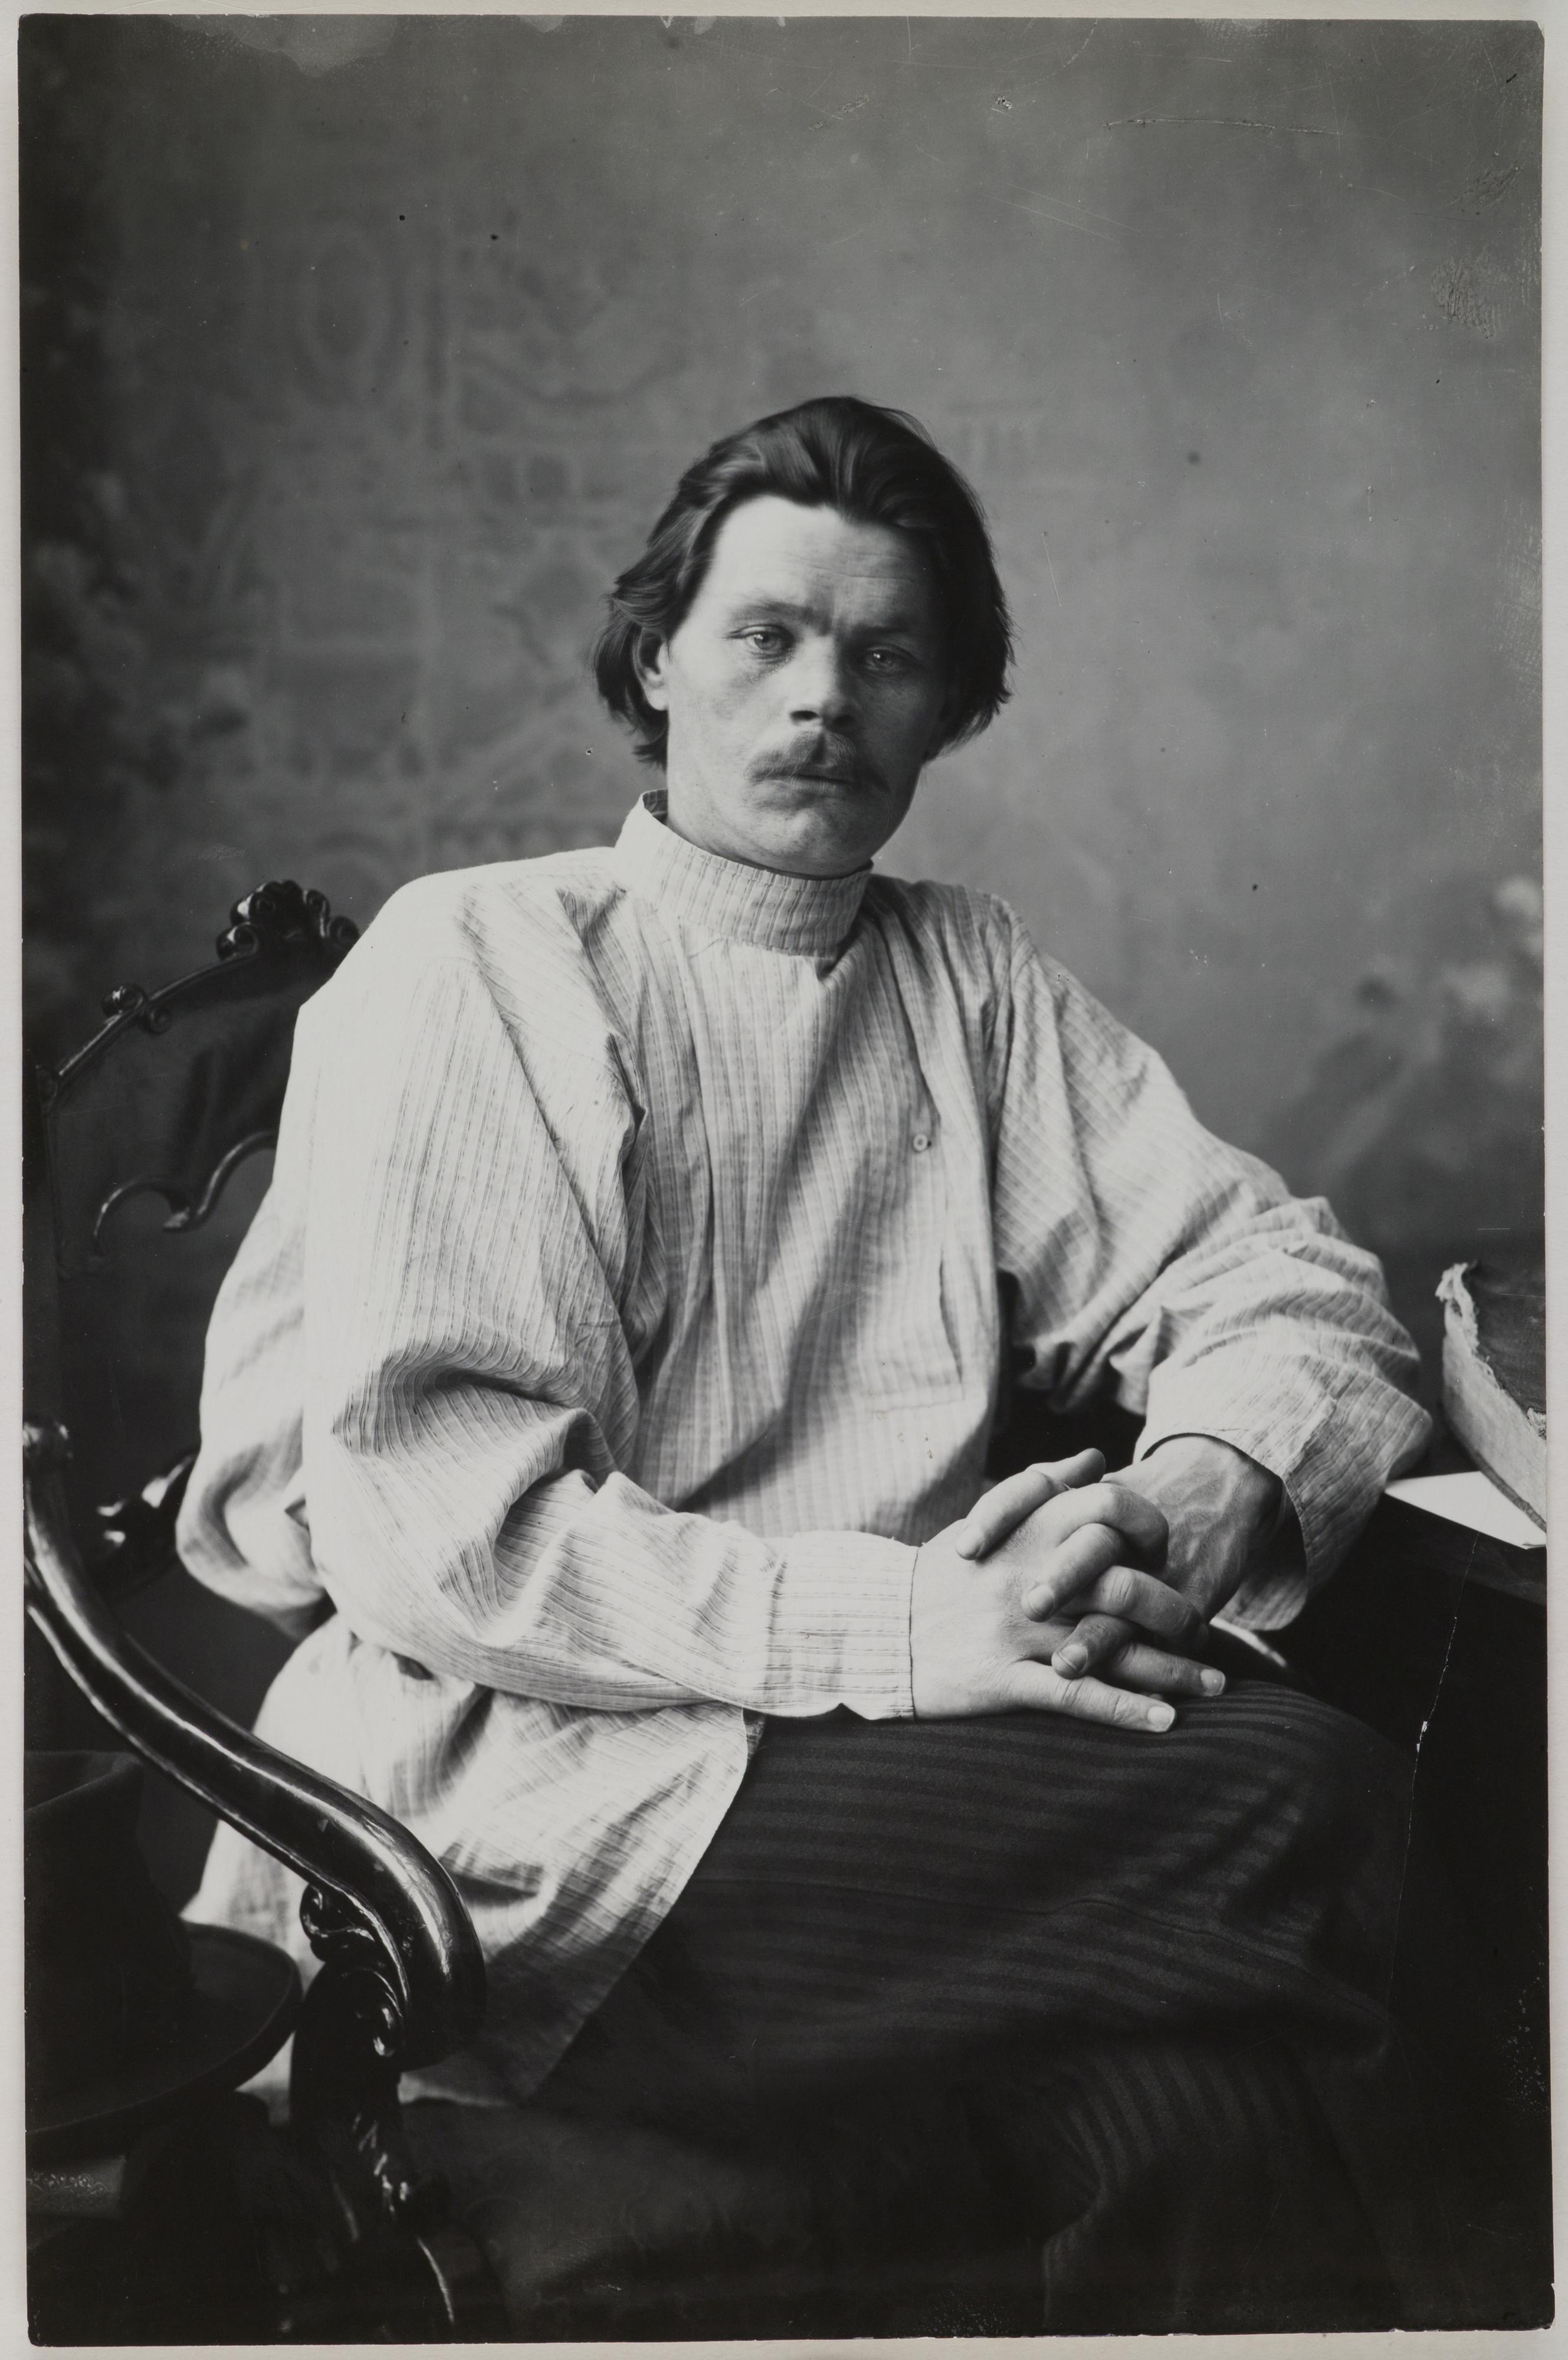 online essays by maxim gorky Maxim gorky whose real name was aleksei maximovich peshkov, was born on march 16, 1868, in the volga river city of nizhny novgorod, which in 1932 was renamed gorky in his honor his father, a cabinetmaker, died when gorky was 4 years old, and the boy was raised in harsh circumstances by his maternal grandparents, the proprietors of a dye works.